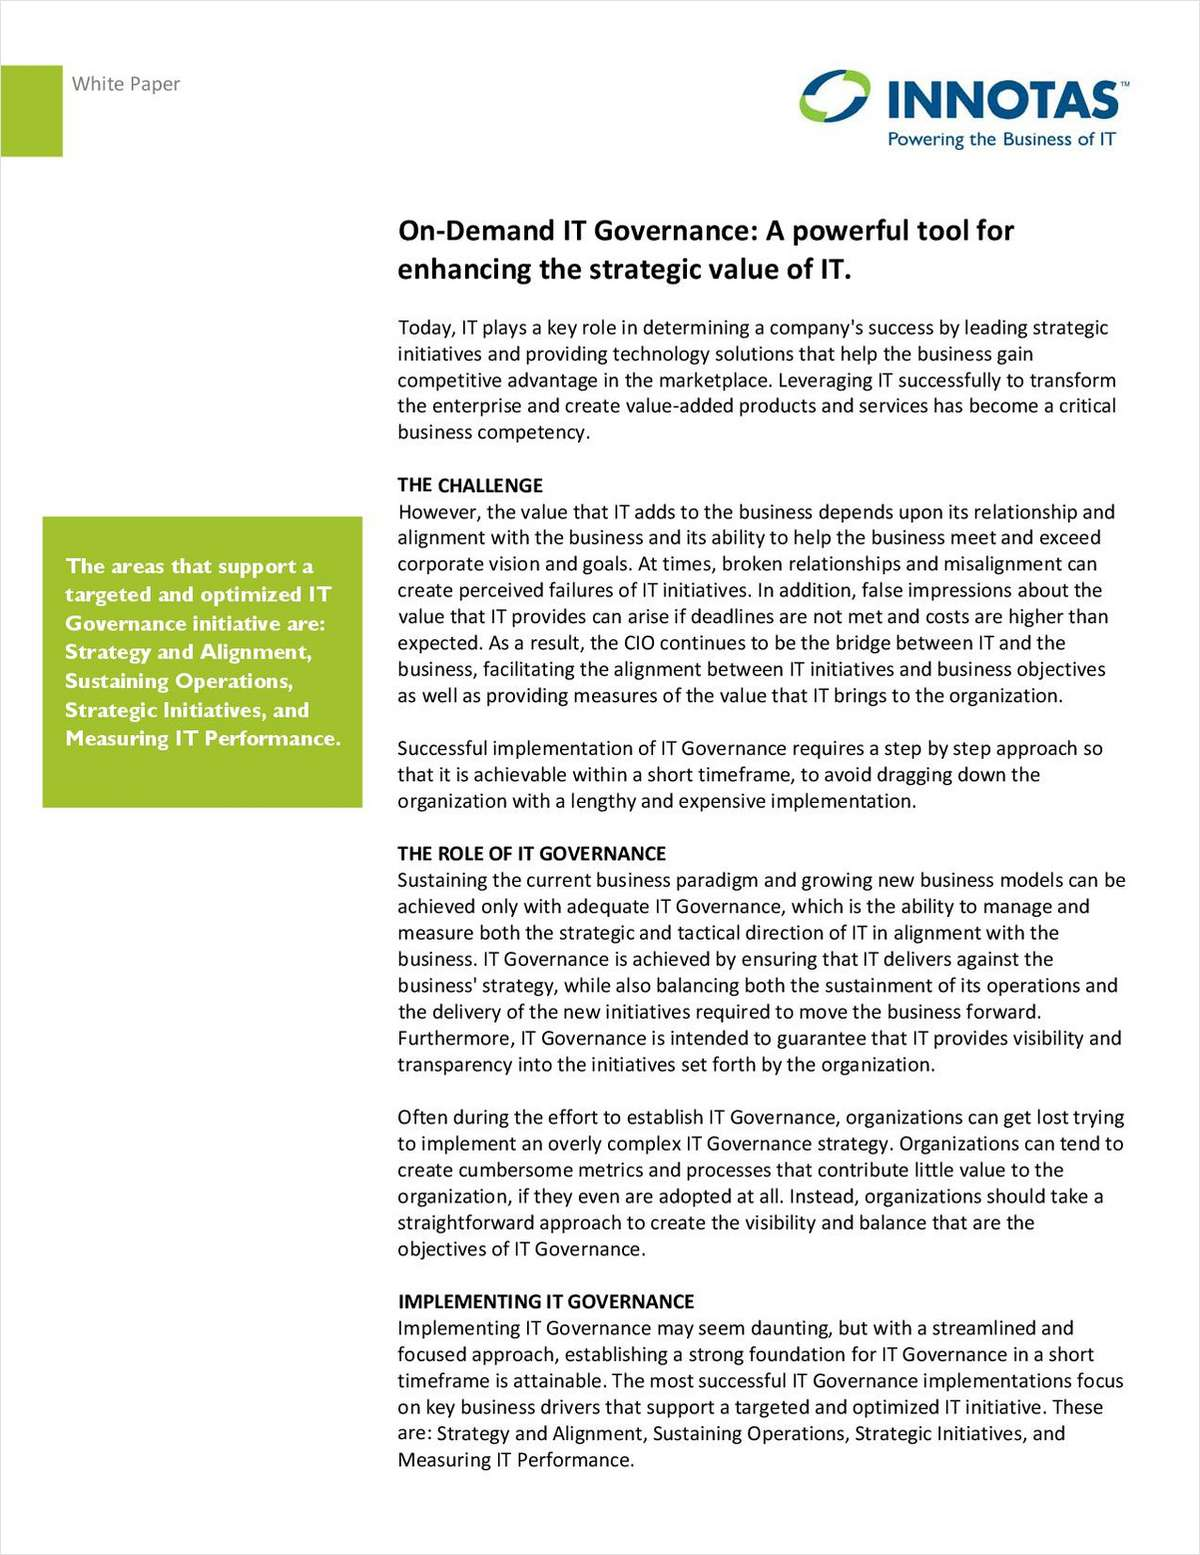 On-Demand IT Governance: A Powerful Tool for Enhancing the Strategic Value of IT